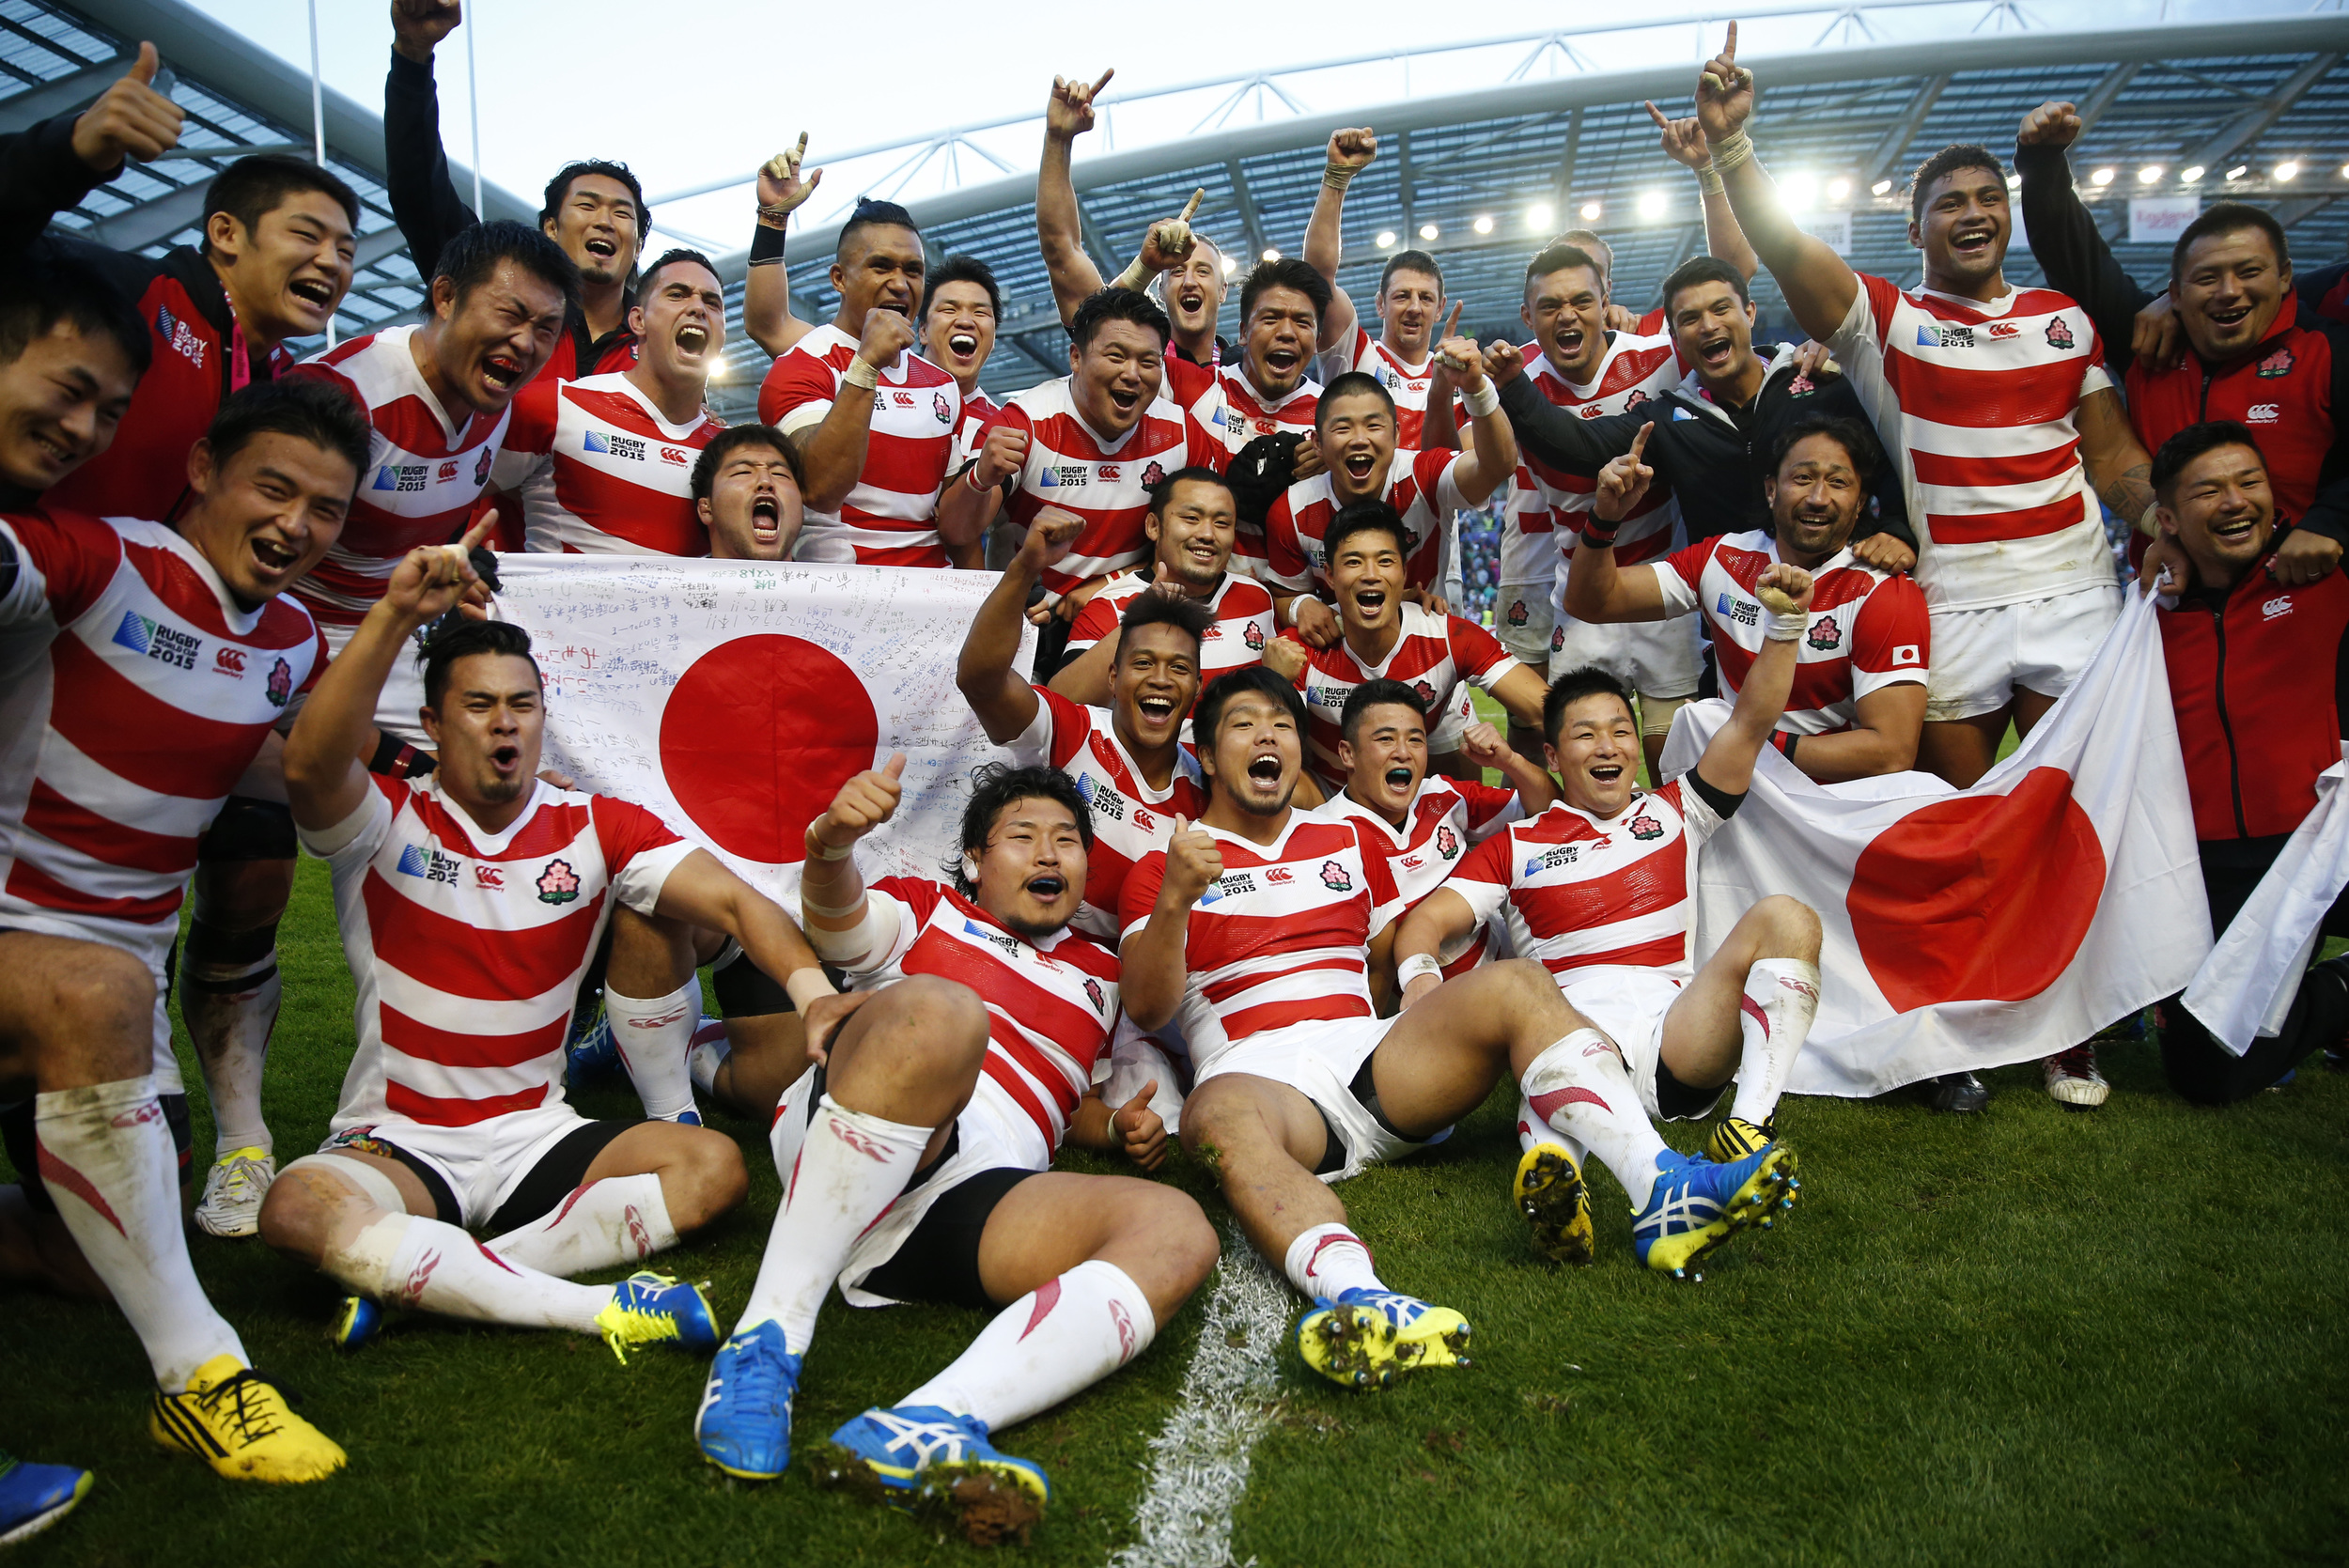 Japan celebrate one of the famous upsets in sport's history after they beat South Africa 34-32 in their opening game at the 2015 Rugby World Cup in Brighton, England. Image supplied by Action Images/Eddie Keogh